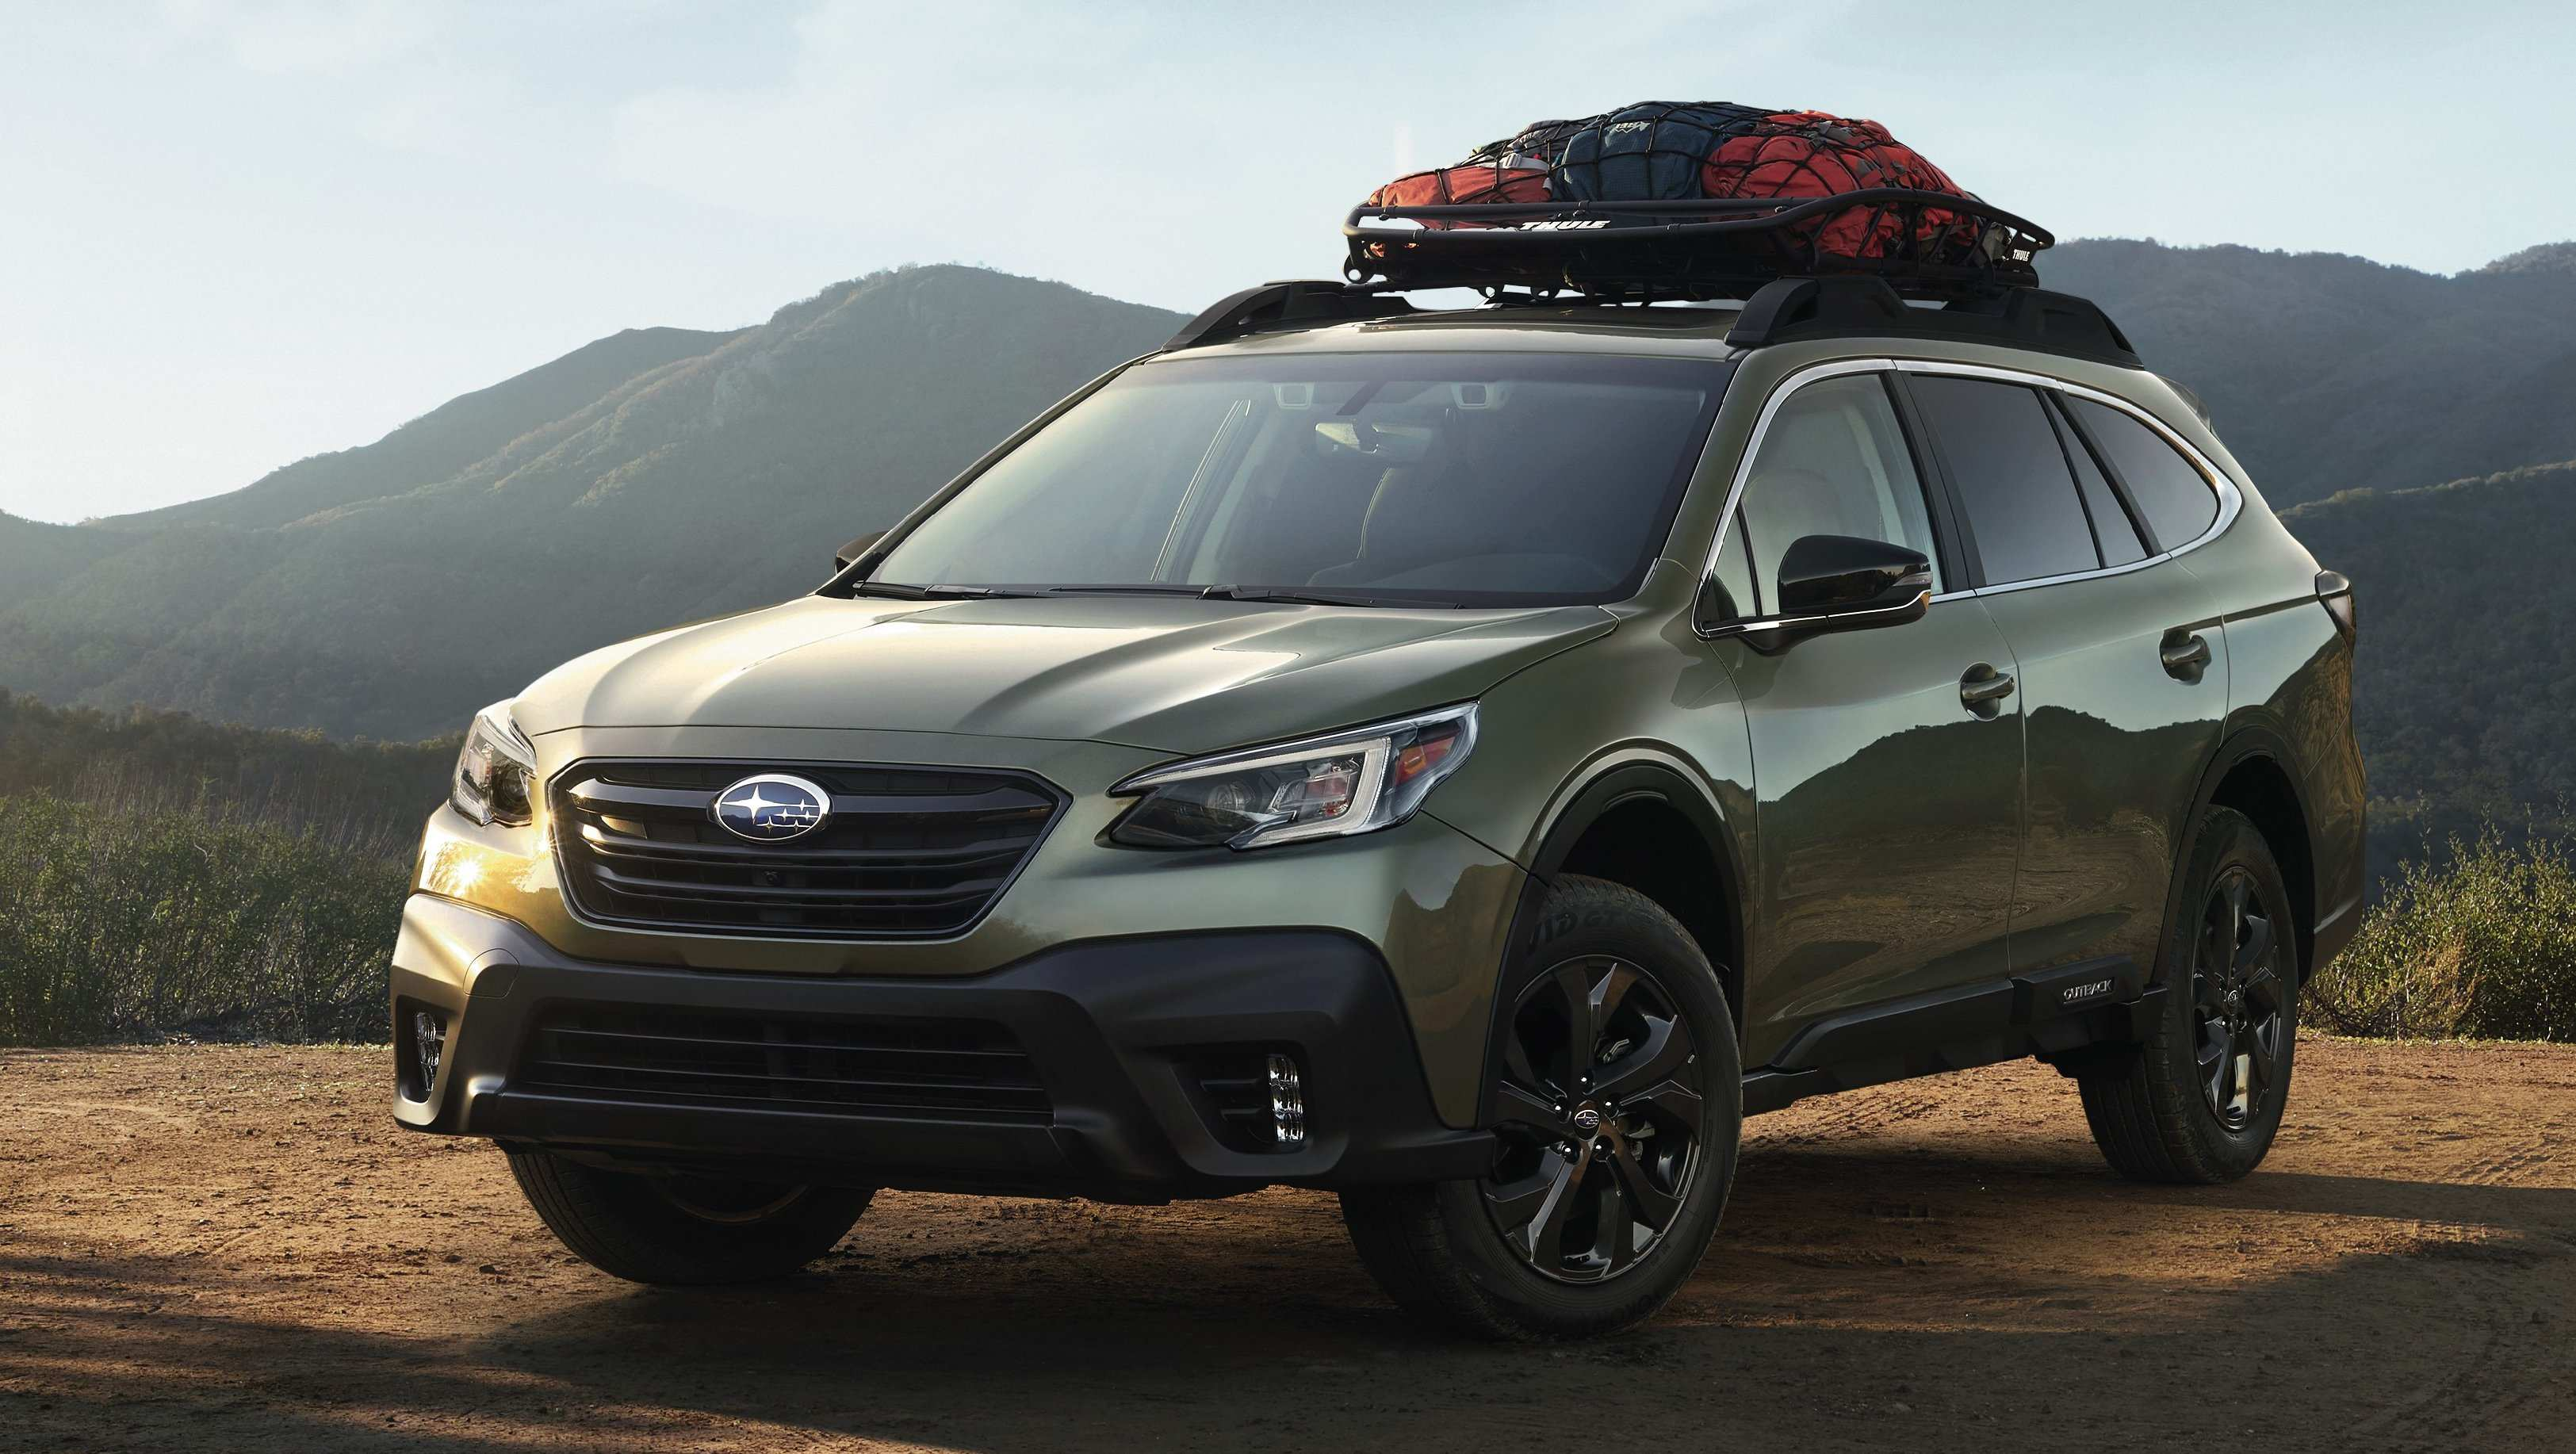 80 Gallery of 2020 Subaru Outback Exterior Colors Specs and Review with 2020 Subaru Outback Exterior Colors